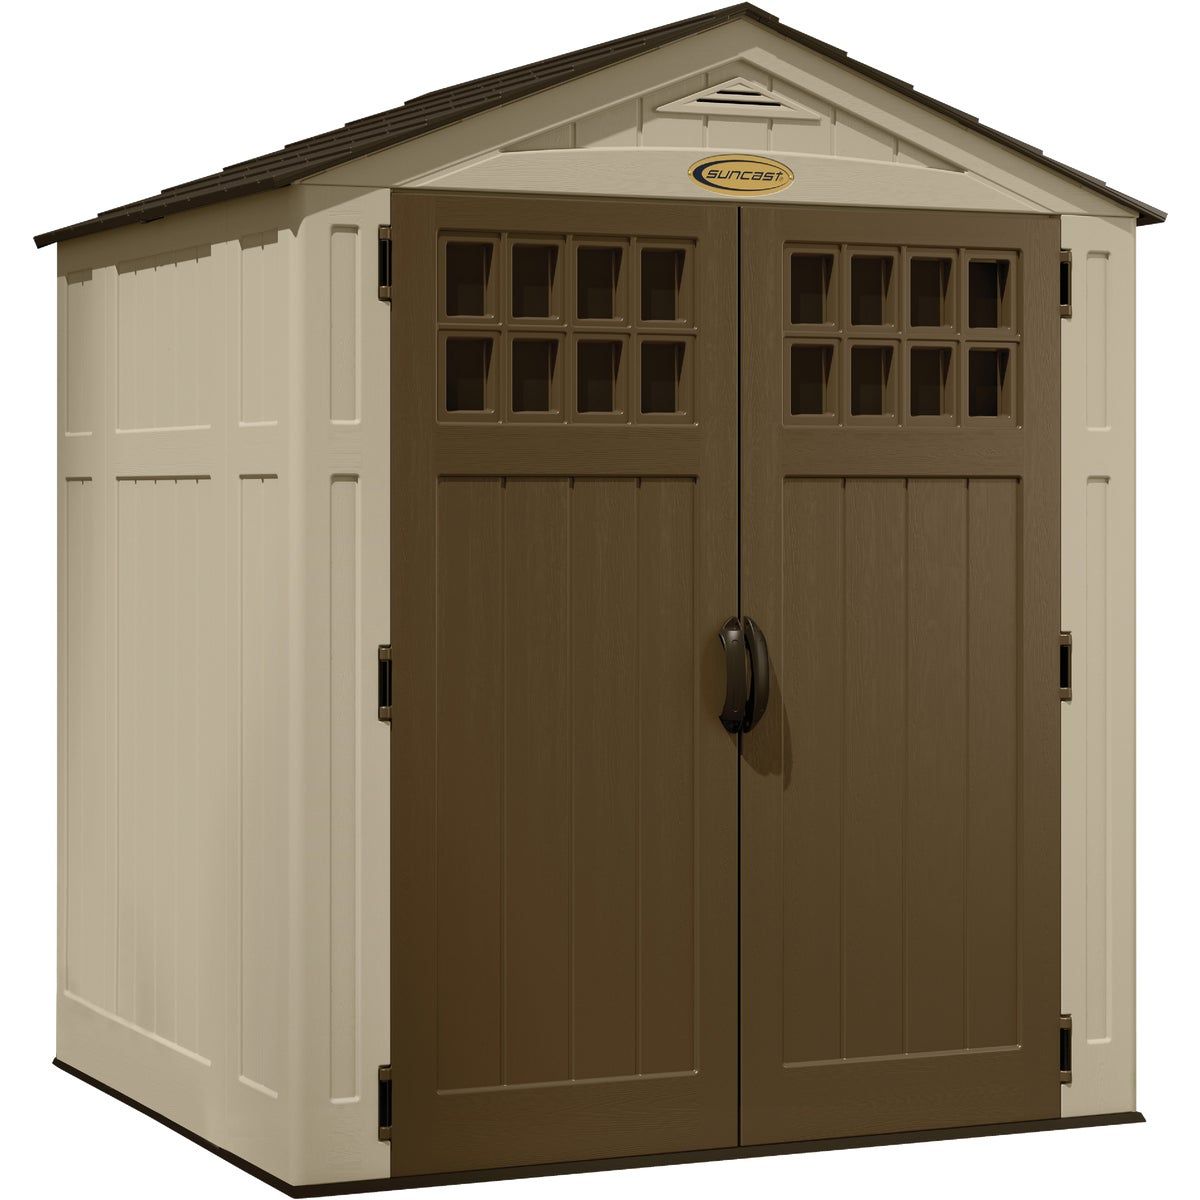 6X5 STORAGE SHED - BMS6550 by Suncast Corp  Sheds